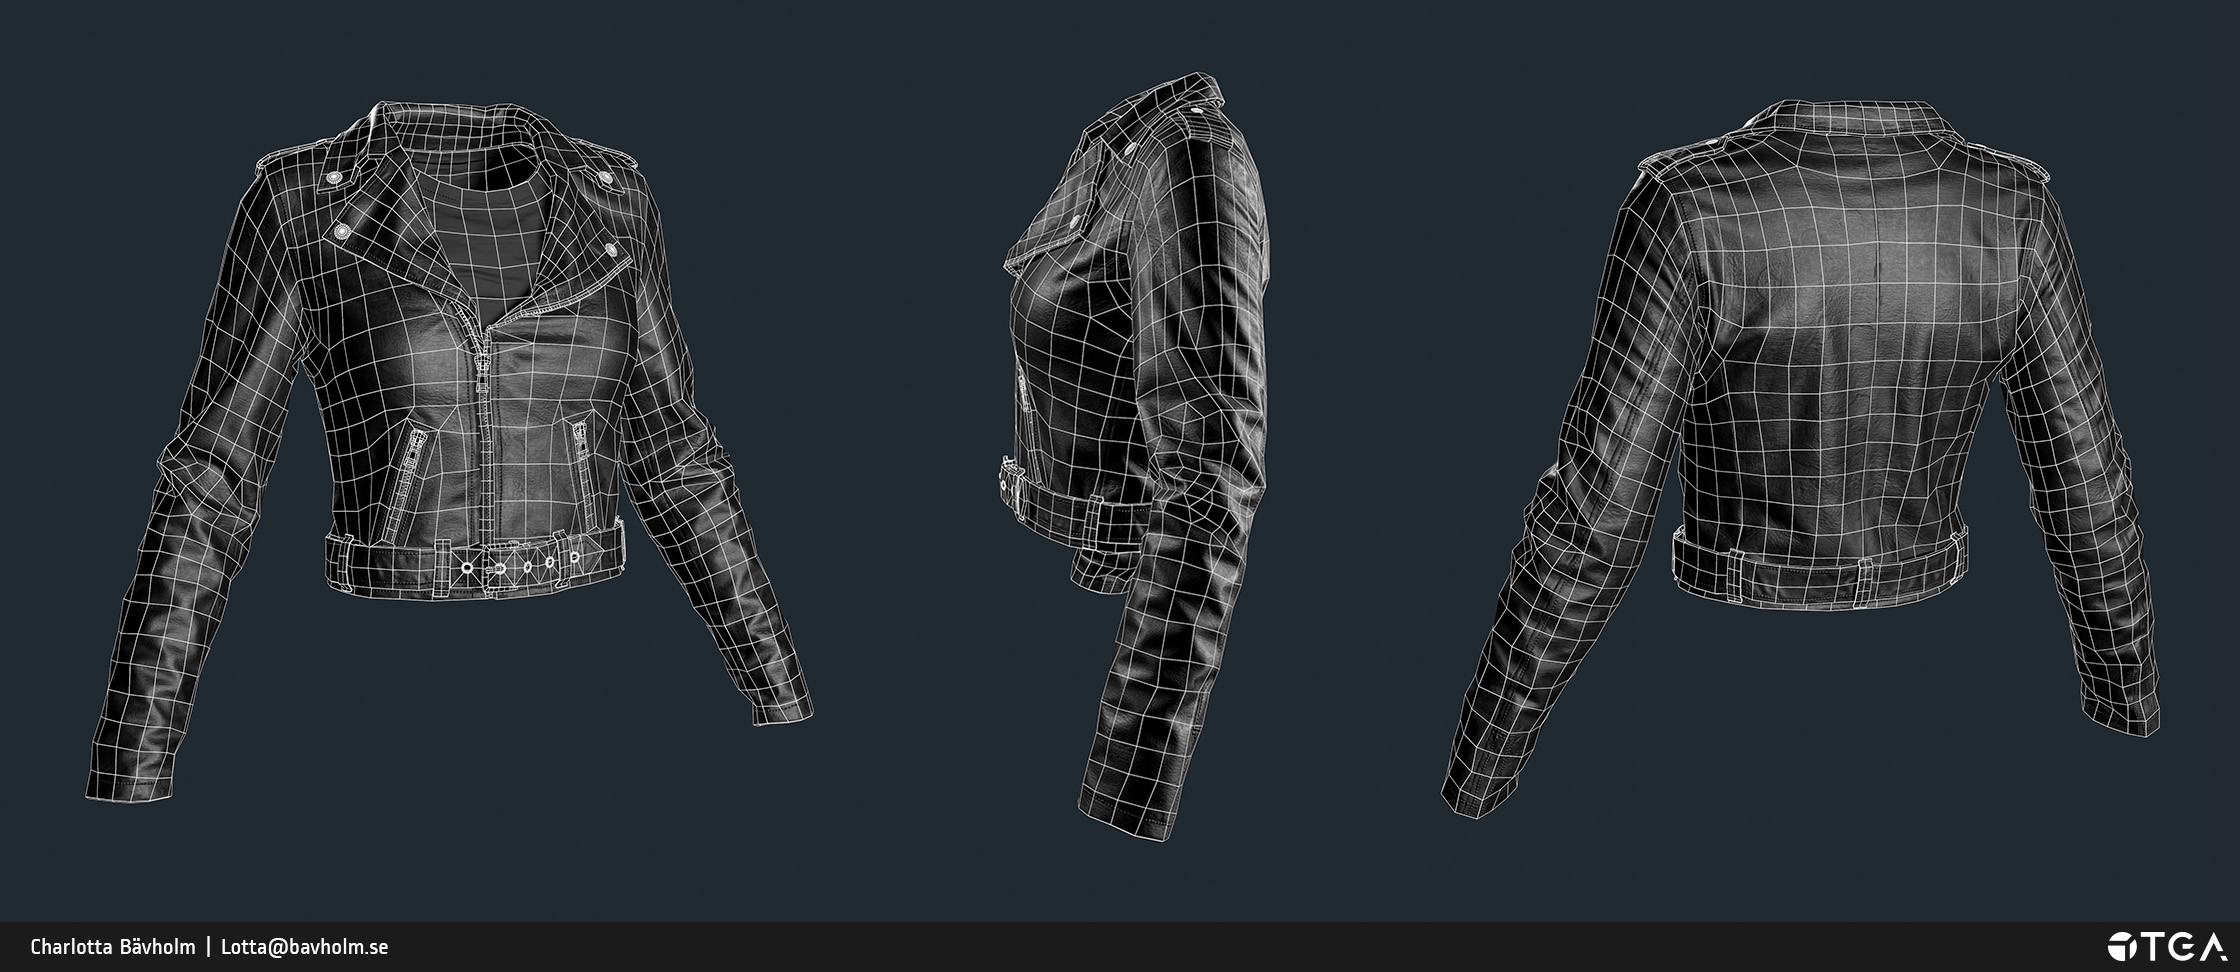 Lowpoly mesh: 11k triangles.